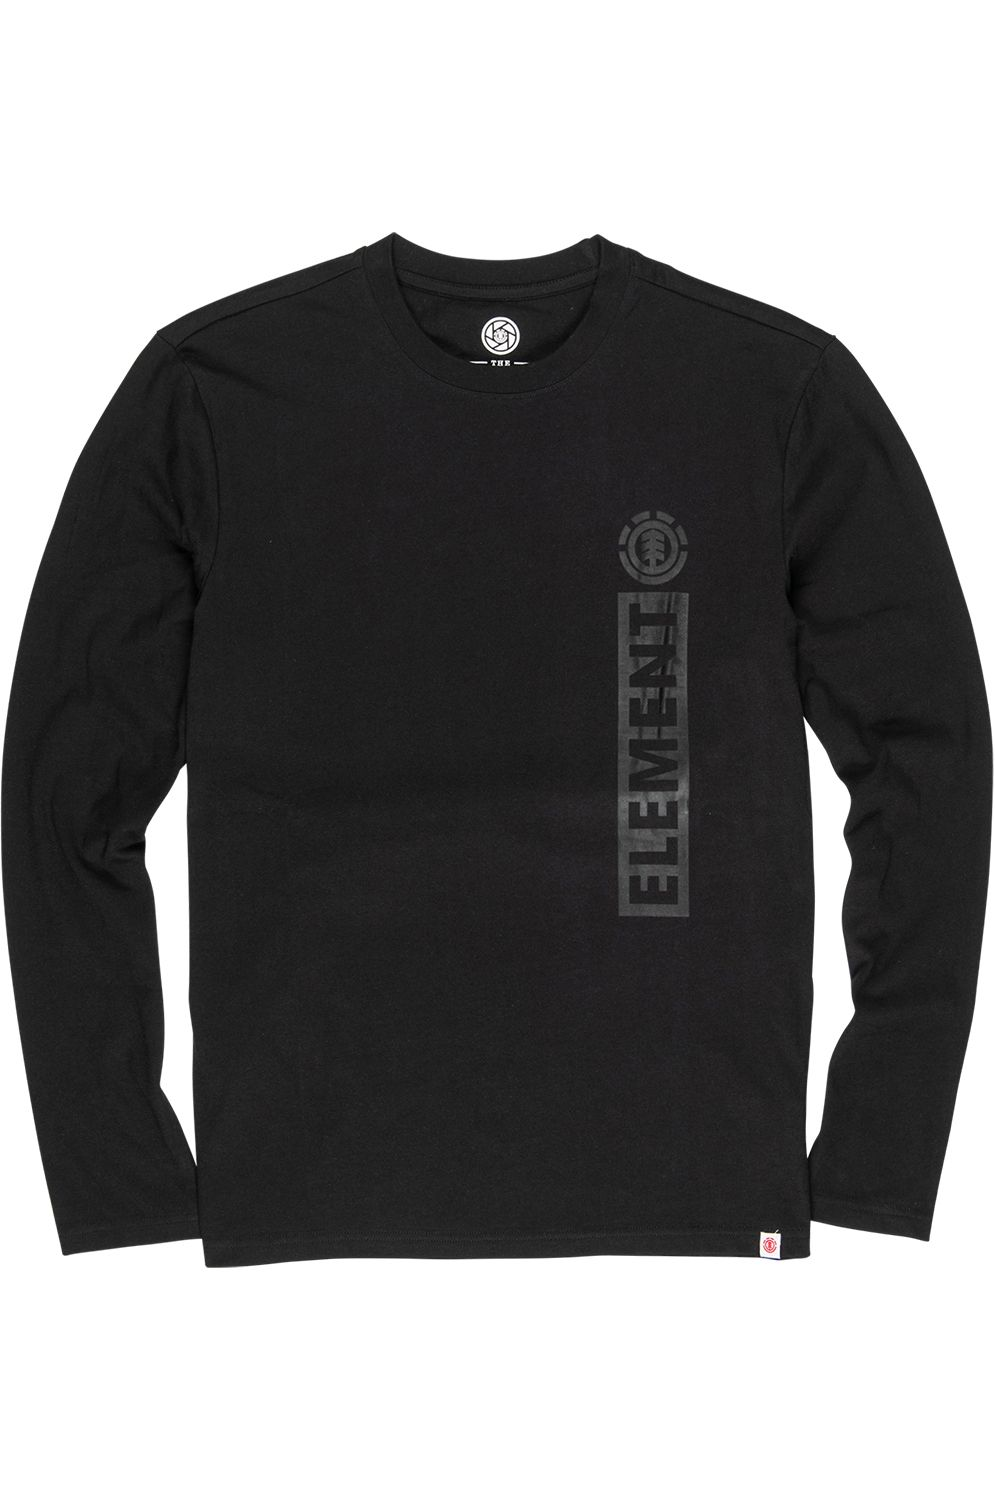 L-Sleeve Element BARCUS Flint Black